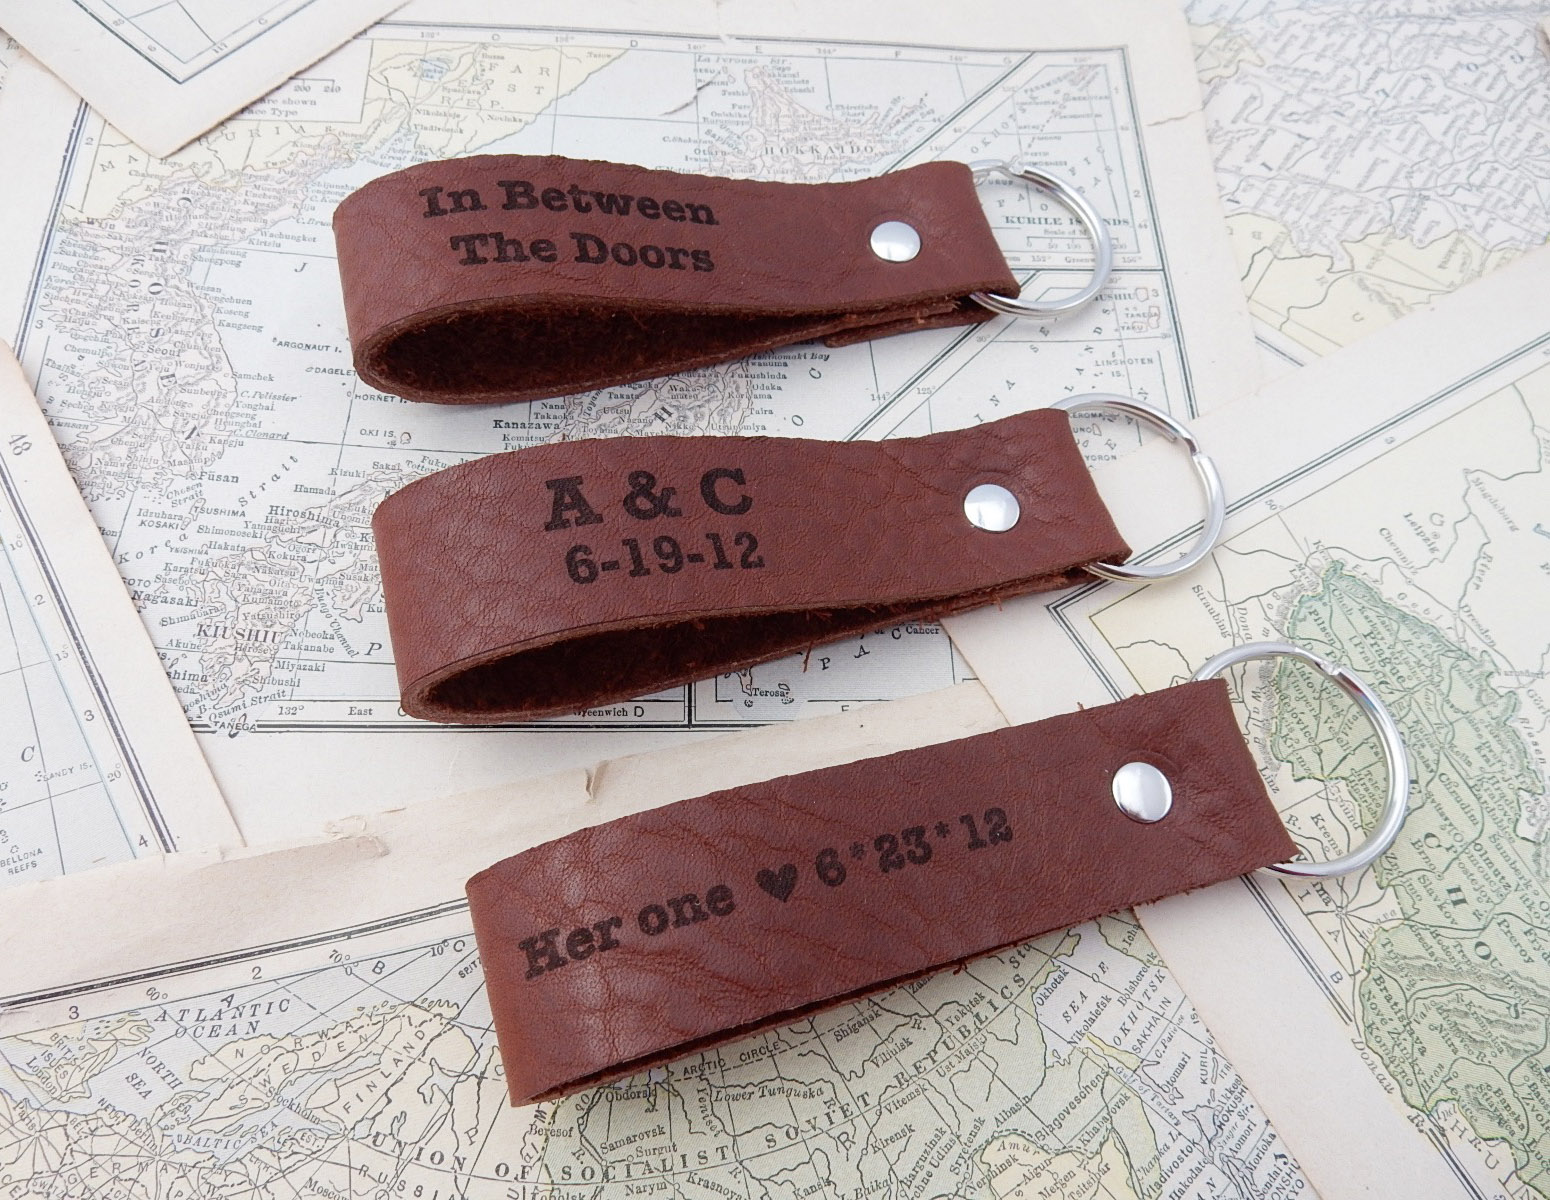 13 Year Wedding Anniversary Gifts For Him: Leather Key Chain Personalized Gift For Him, Leather Key